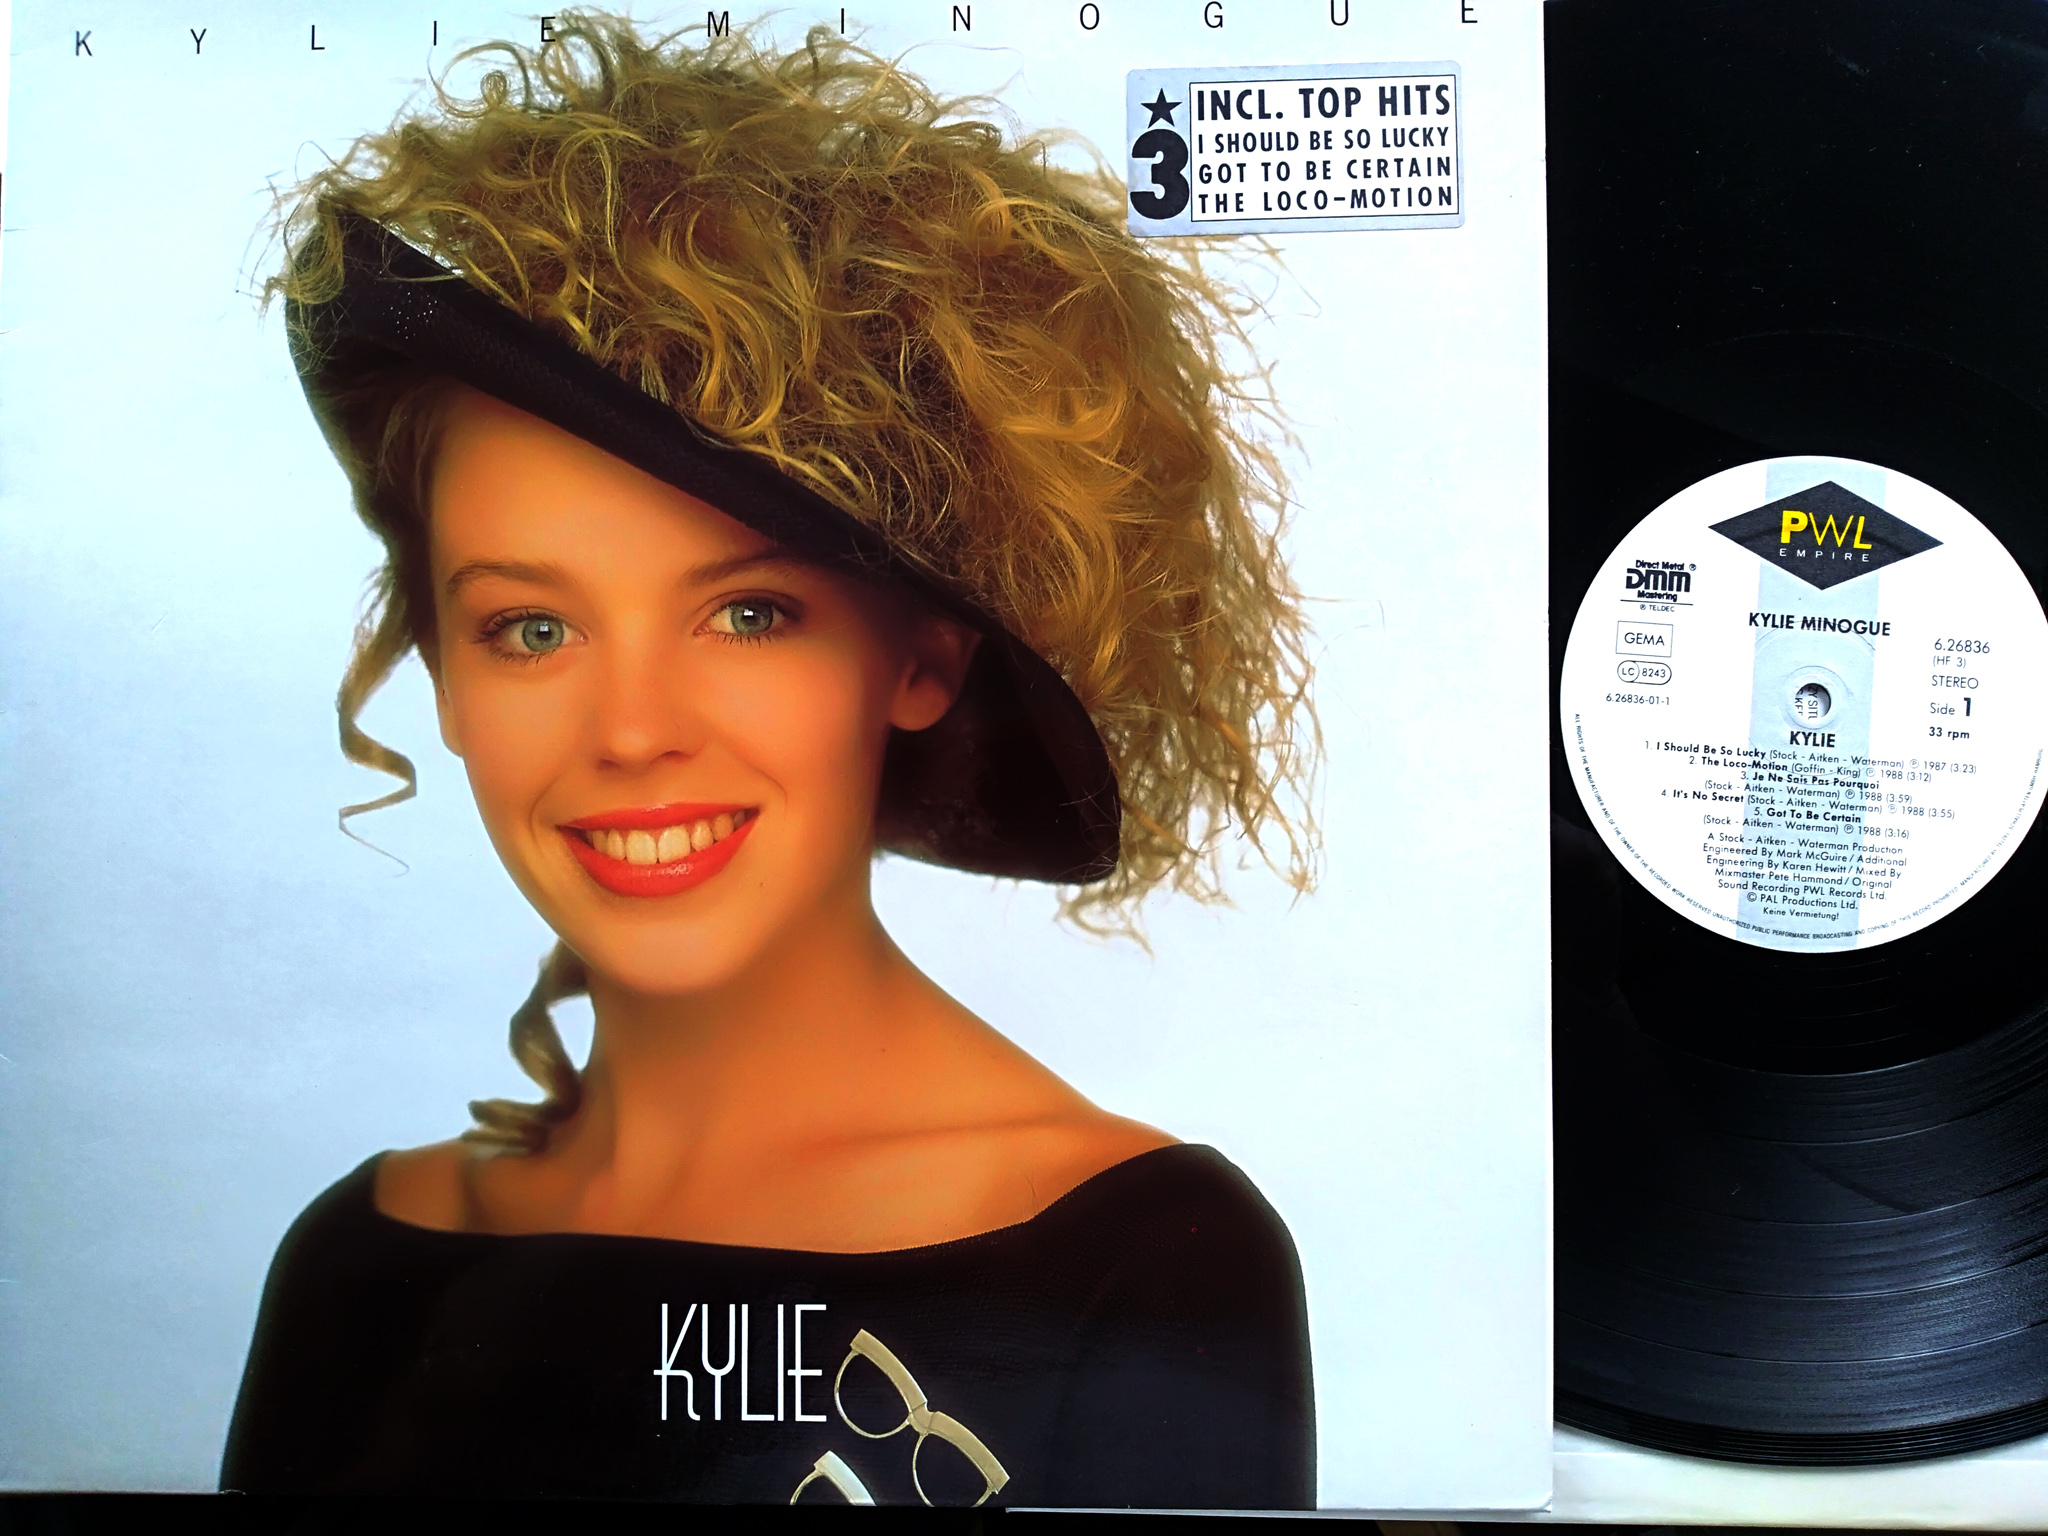 Kylie Minogue - Kylie LP